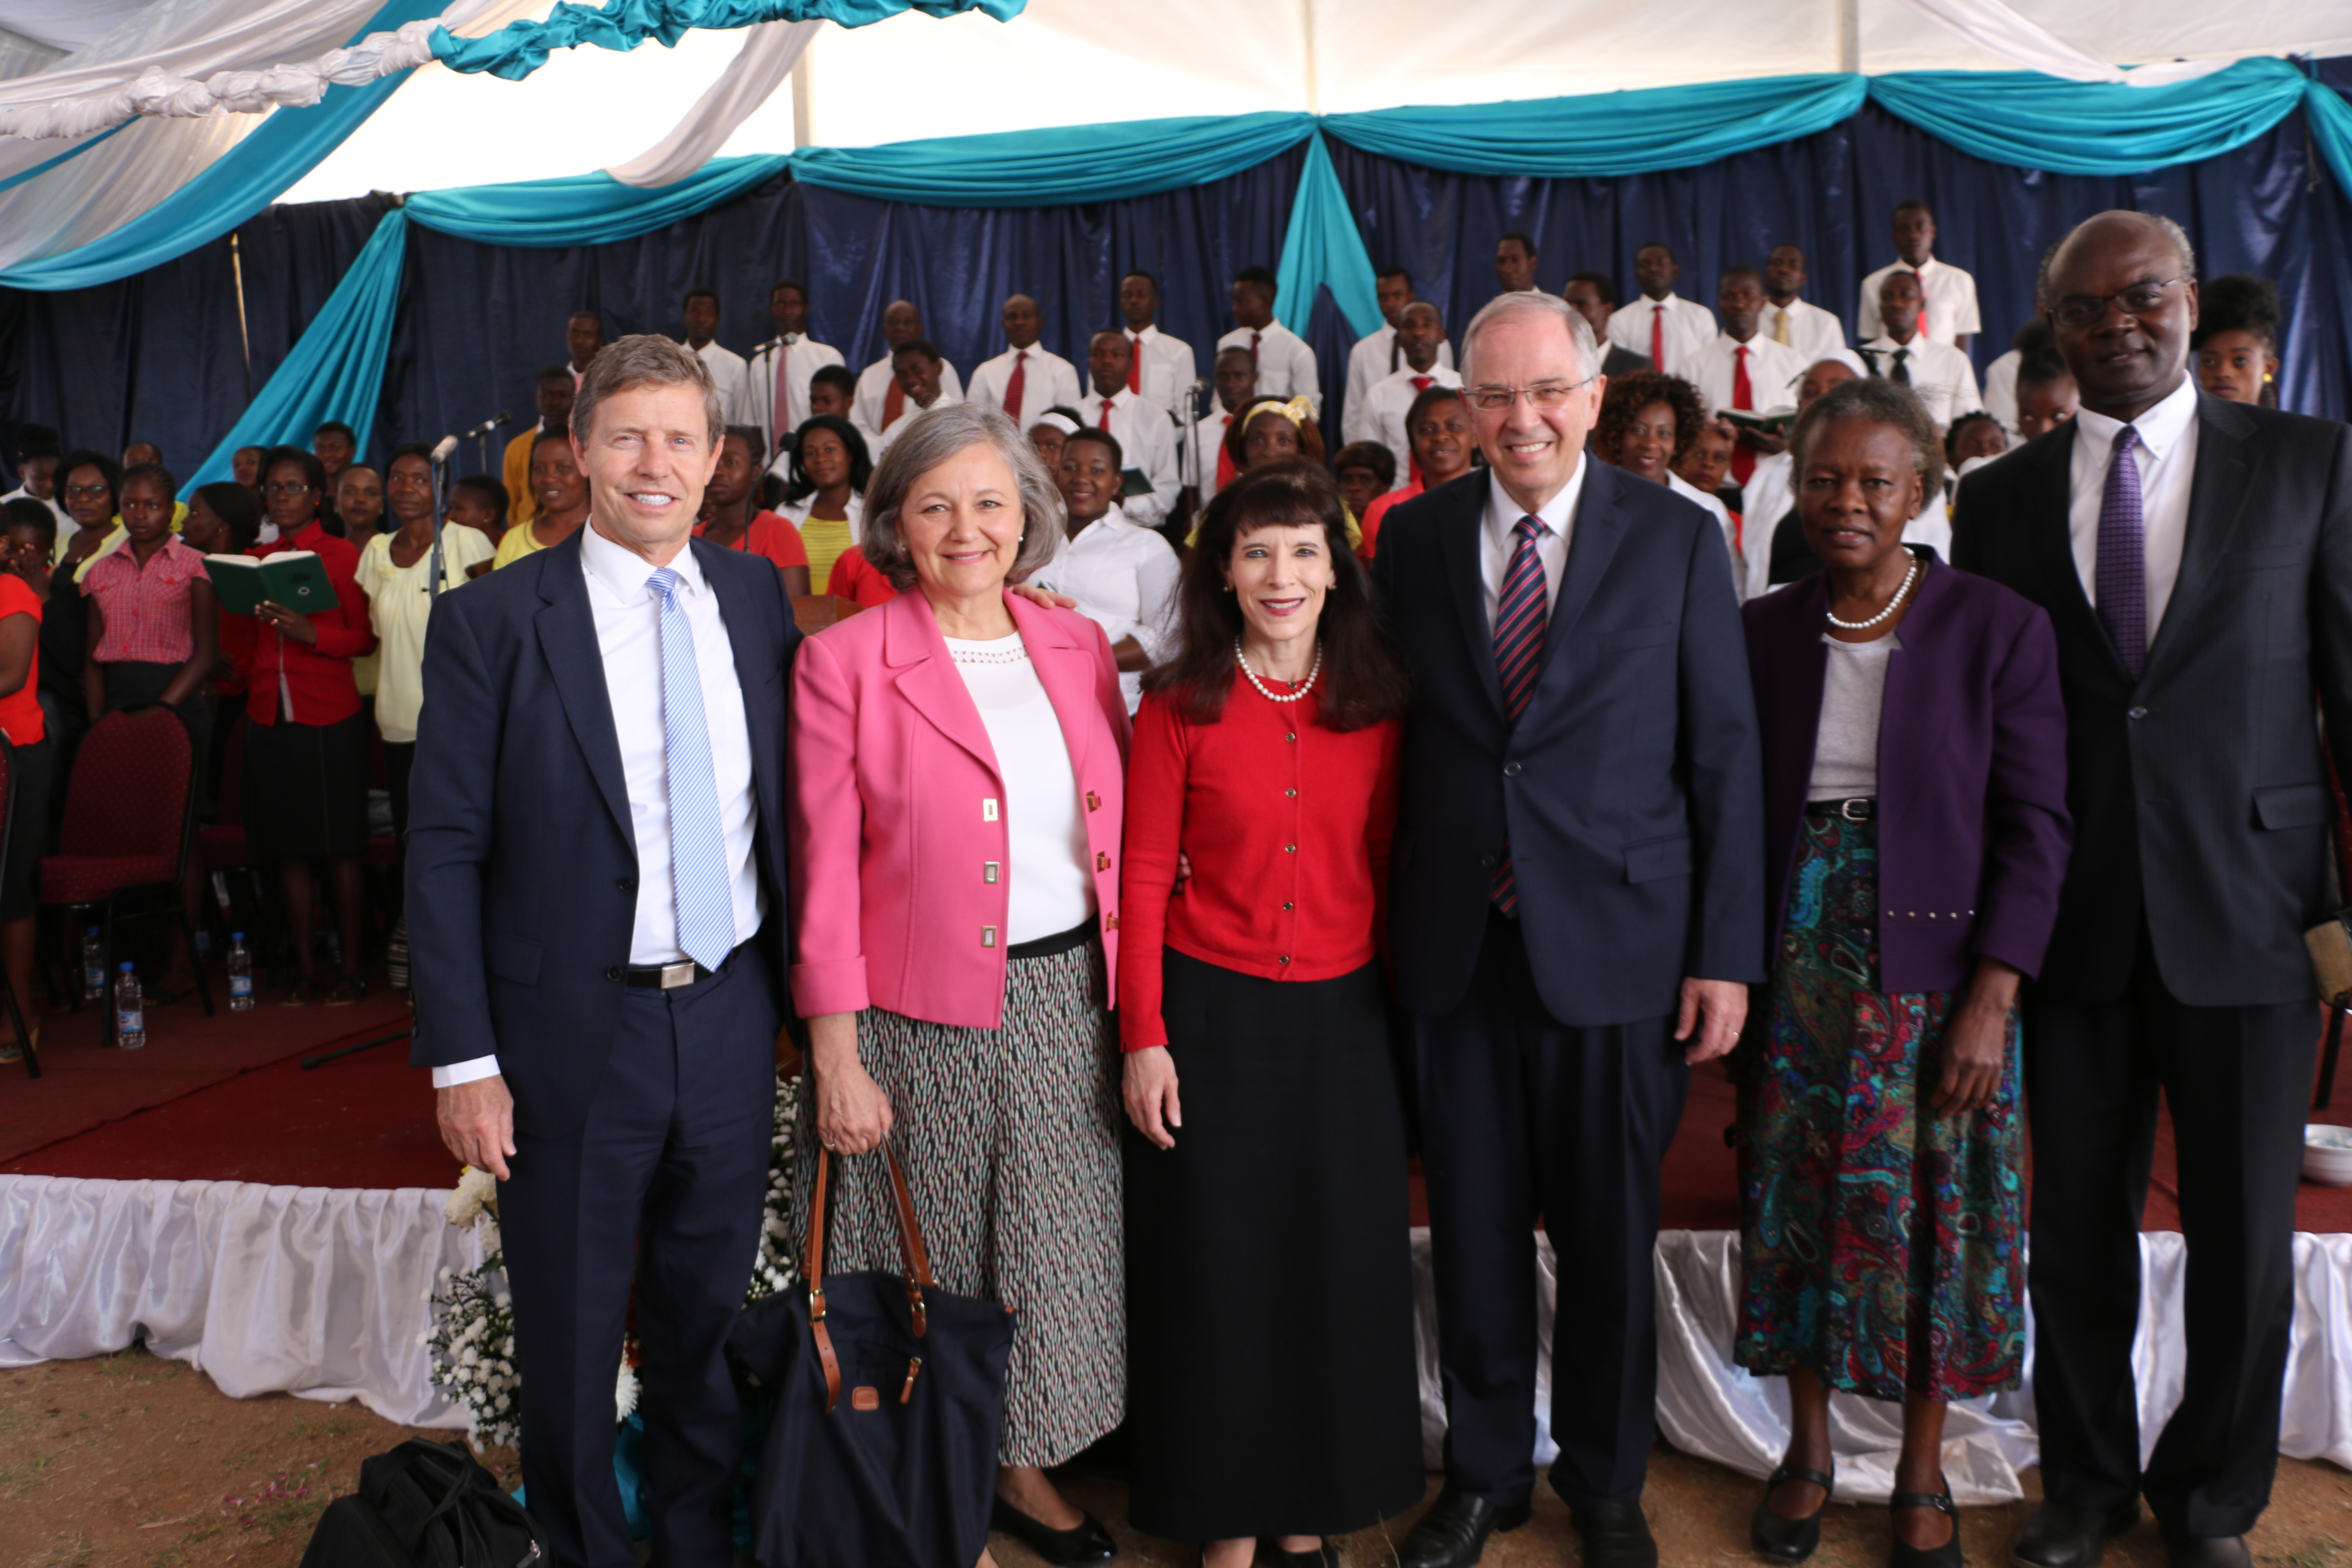 Elder Neil L. Andersen of the Quorum of the Twelve Apostles, center with Sister Kathy Andersen; Elder S. Mark Palmer, a General Authority Seventy, and Sister Jacqueline W. Palmer, left; and Elder Jospeh W. Sitati, a General Authority Seventy, and Sister Gladys N. Sitati stand together after a member meeting in Zimbabwe on Nov. 18. 2018.